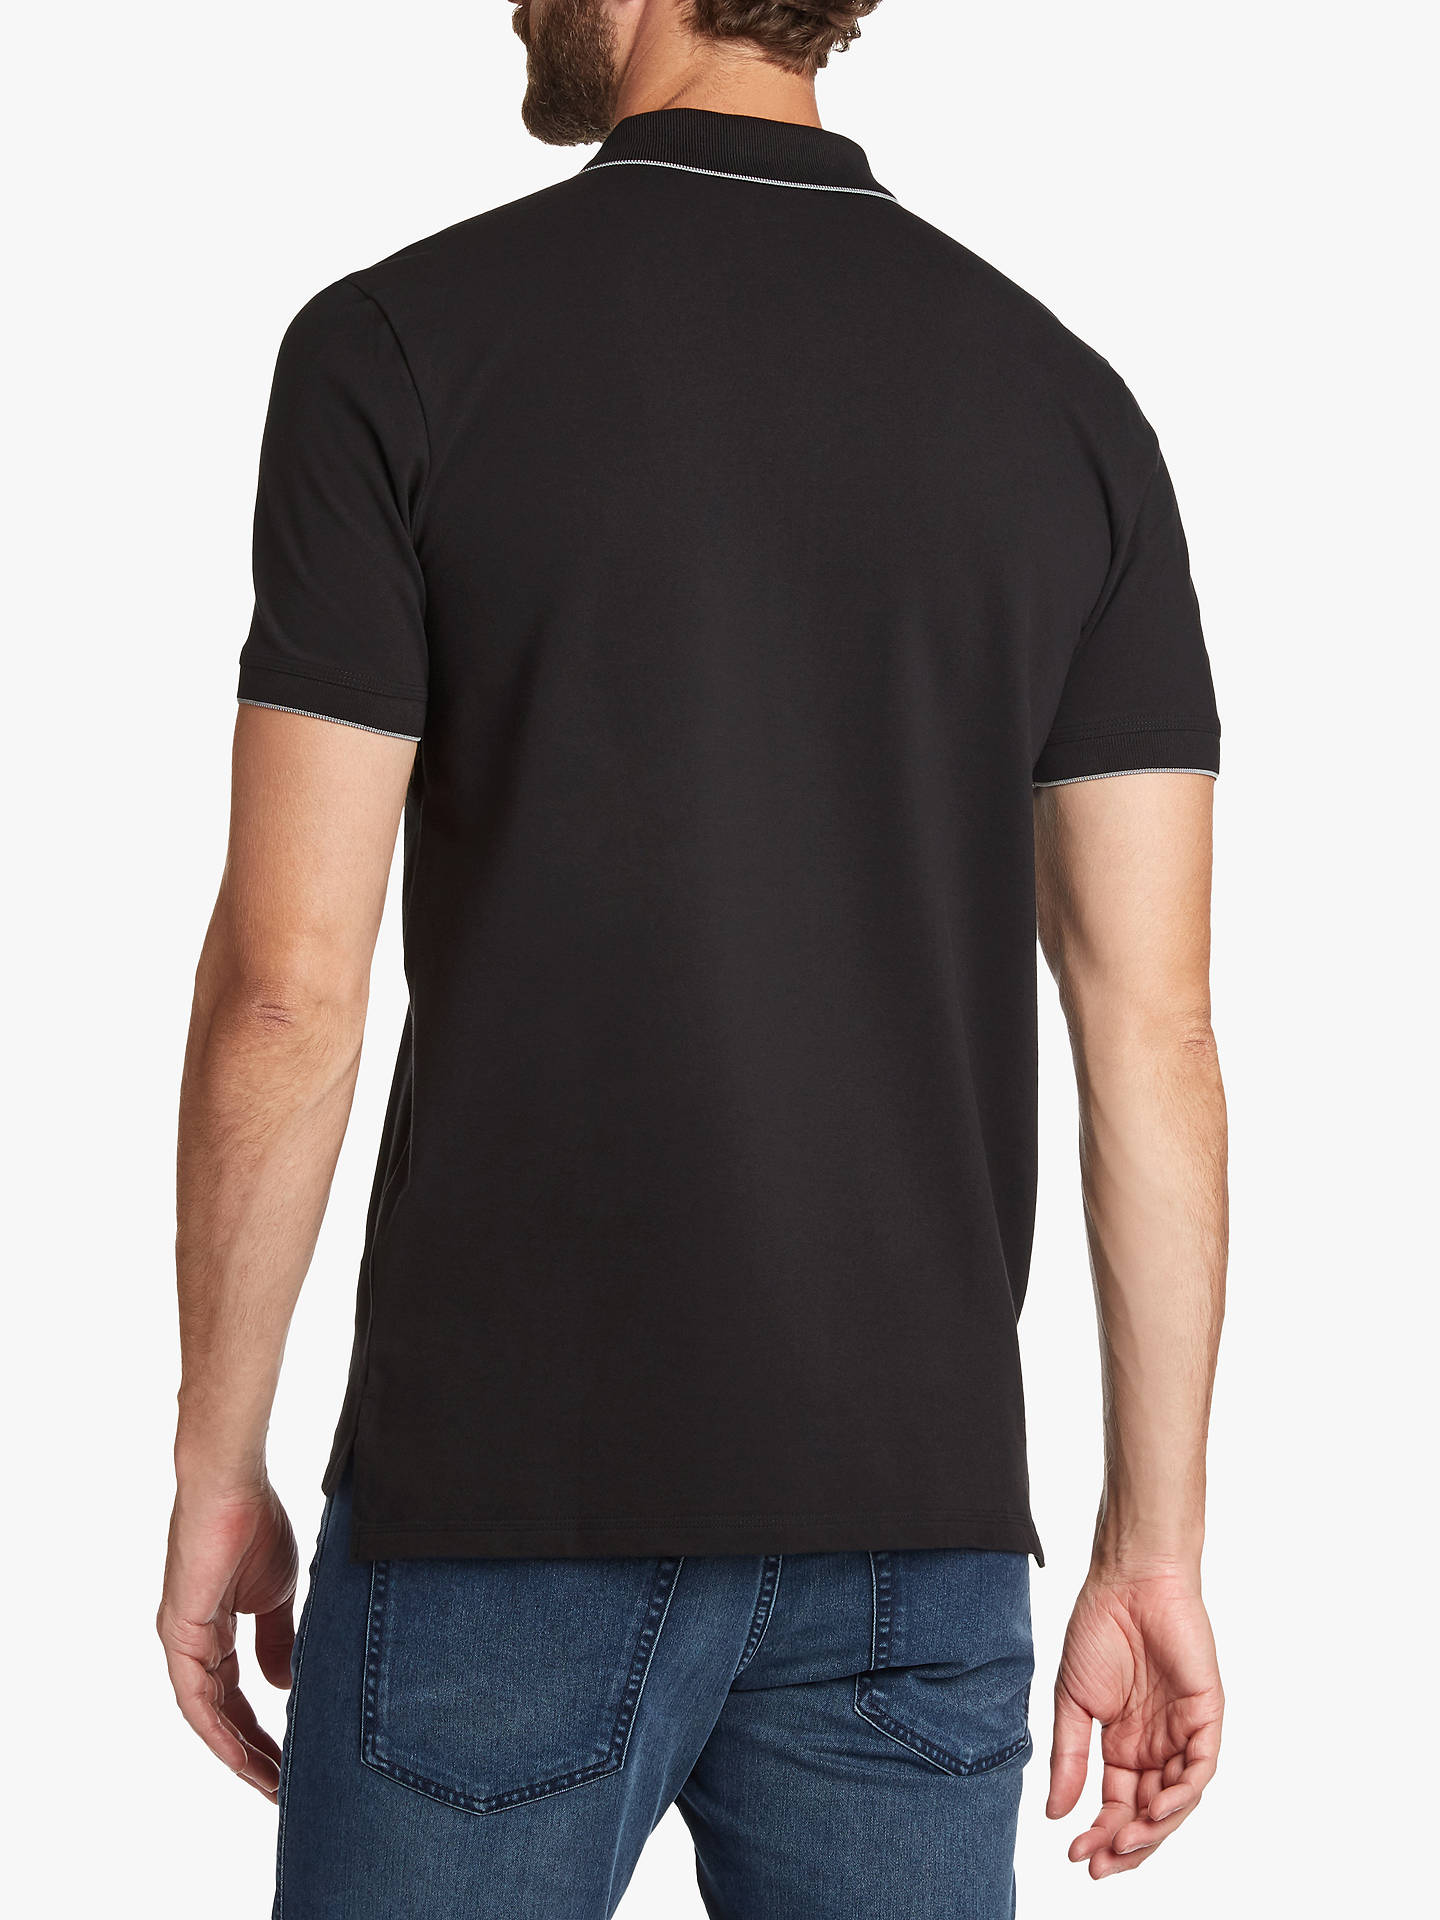 ef0d4975 ... Buy HUGO by Hugo Boss Dinoso Contrast Tipping Polo Shirt, Black, S  Online at ...